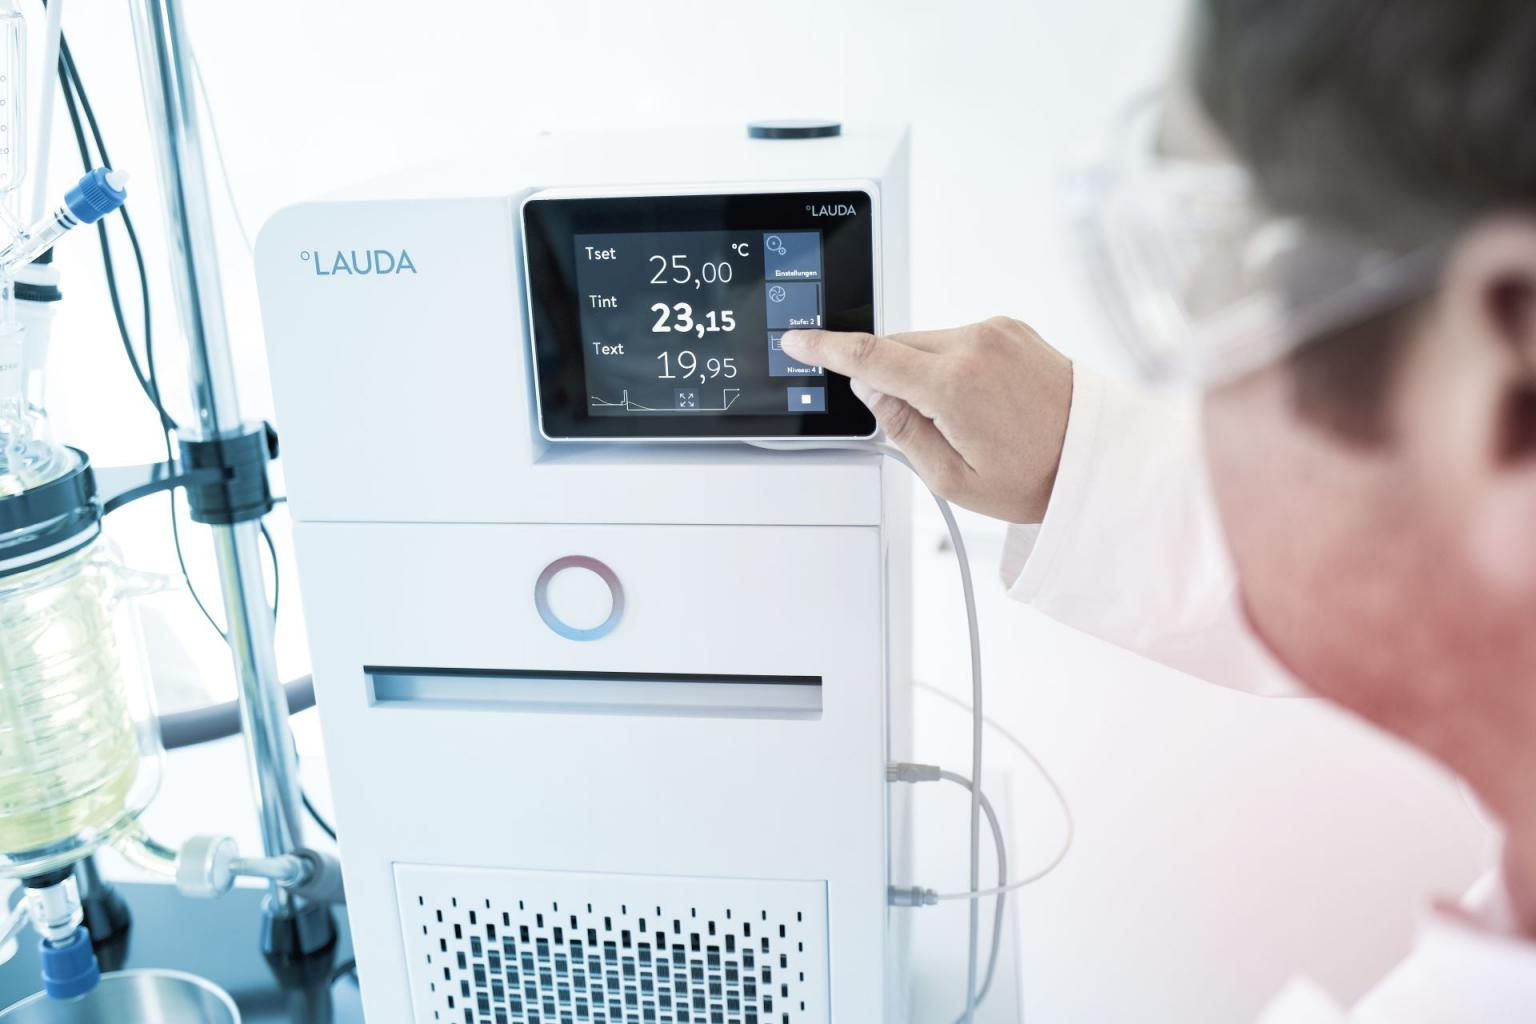 LAUDA provides temperature control solutions for industries from chemistry to automotive.